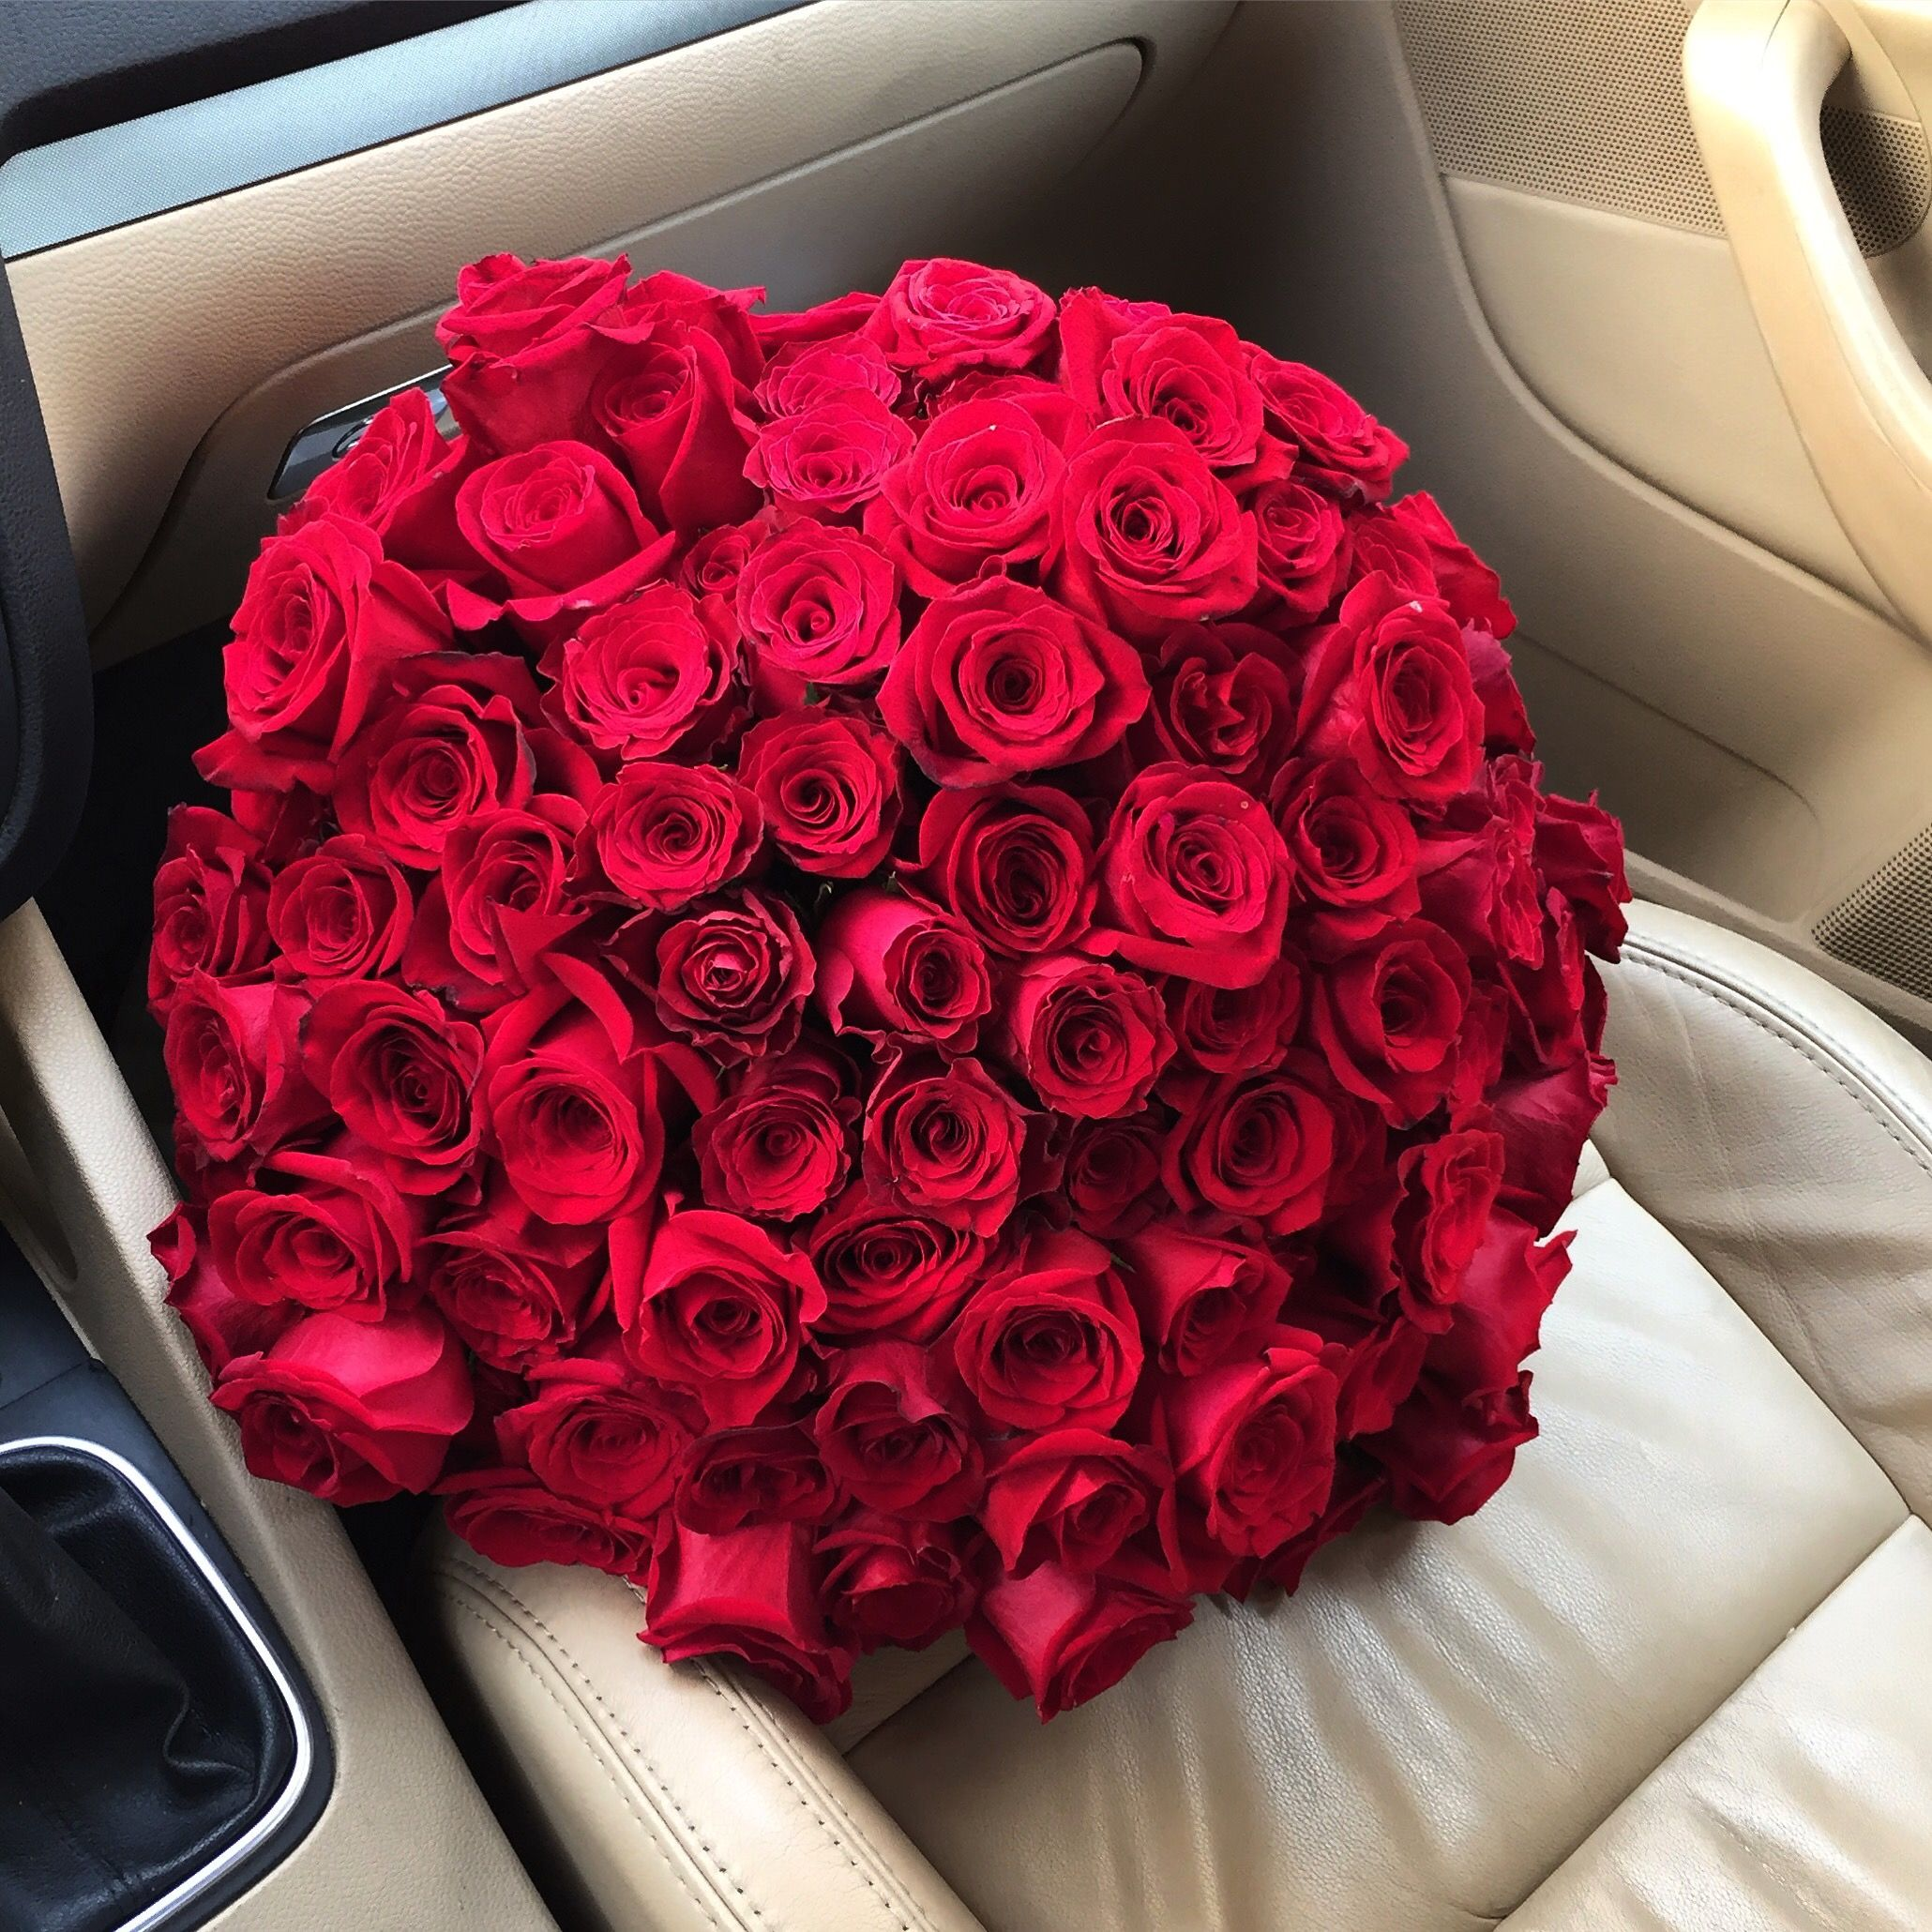 Pinterest Whywhyn0t Roses Bouquet Gift Luxury Flowers Romantic Flowers